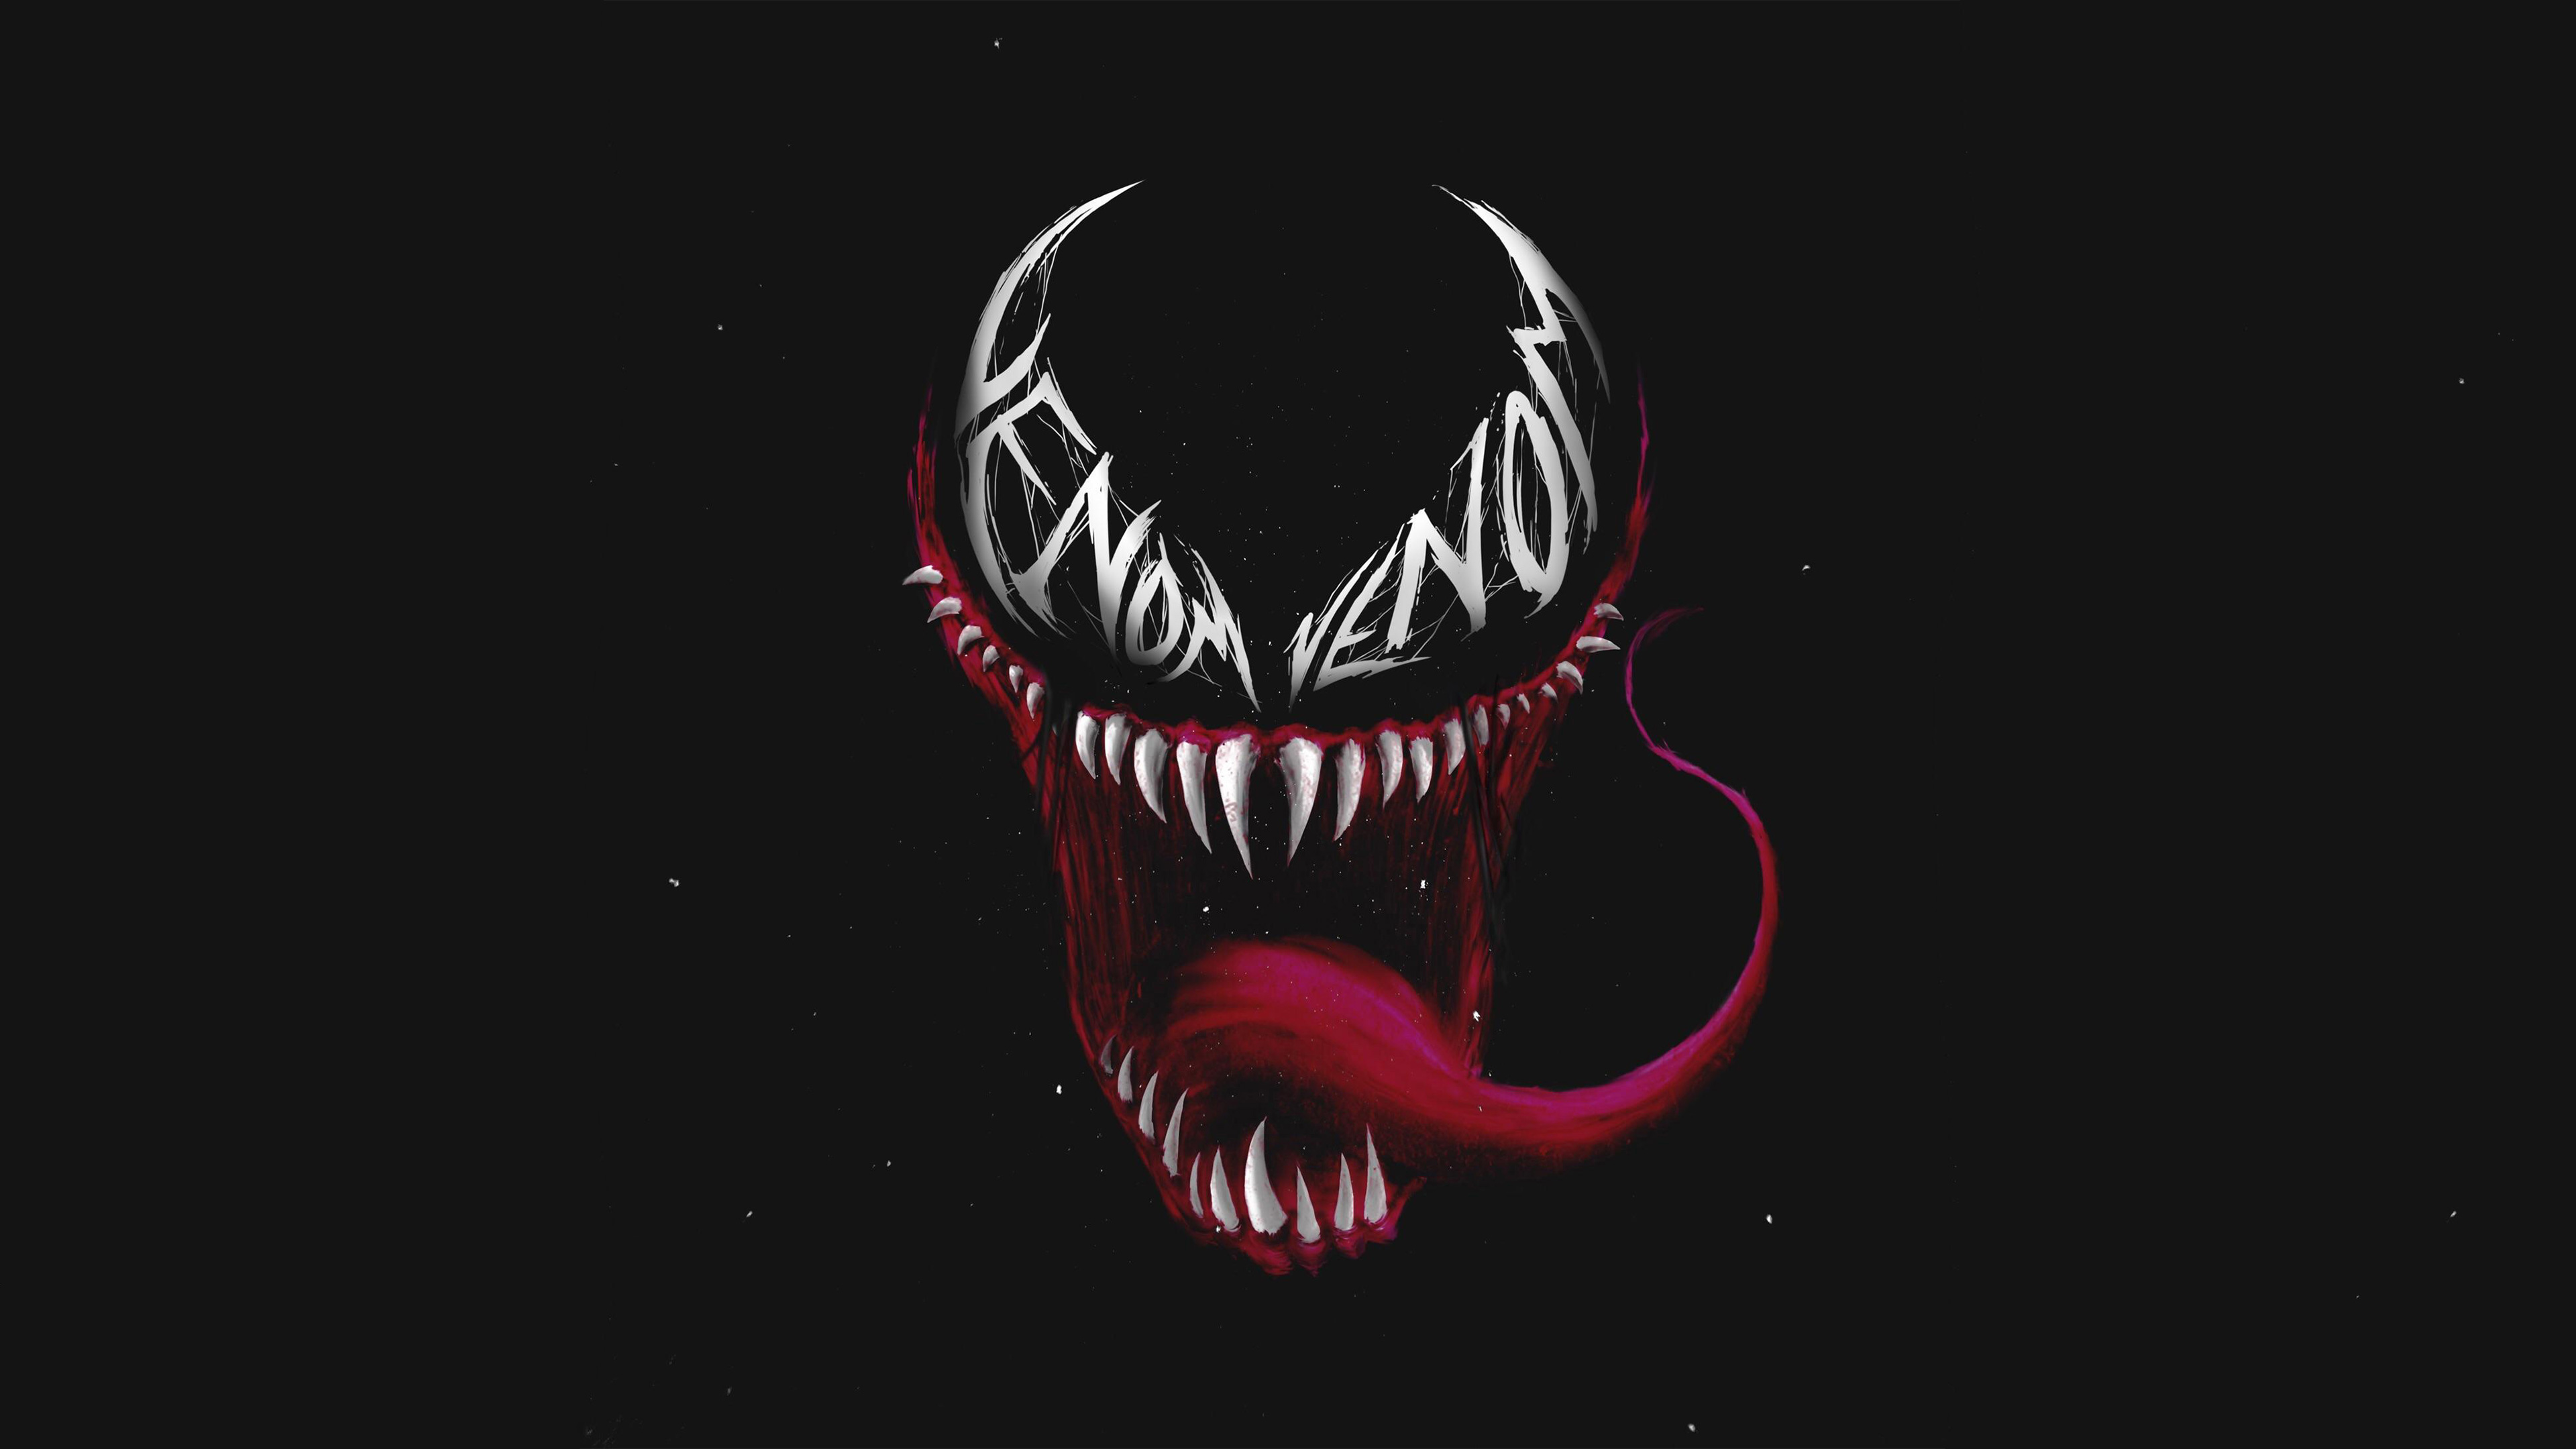 Venom Reddit Art Hd Superheroes 4k Wallpapers Images